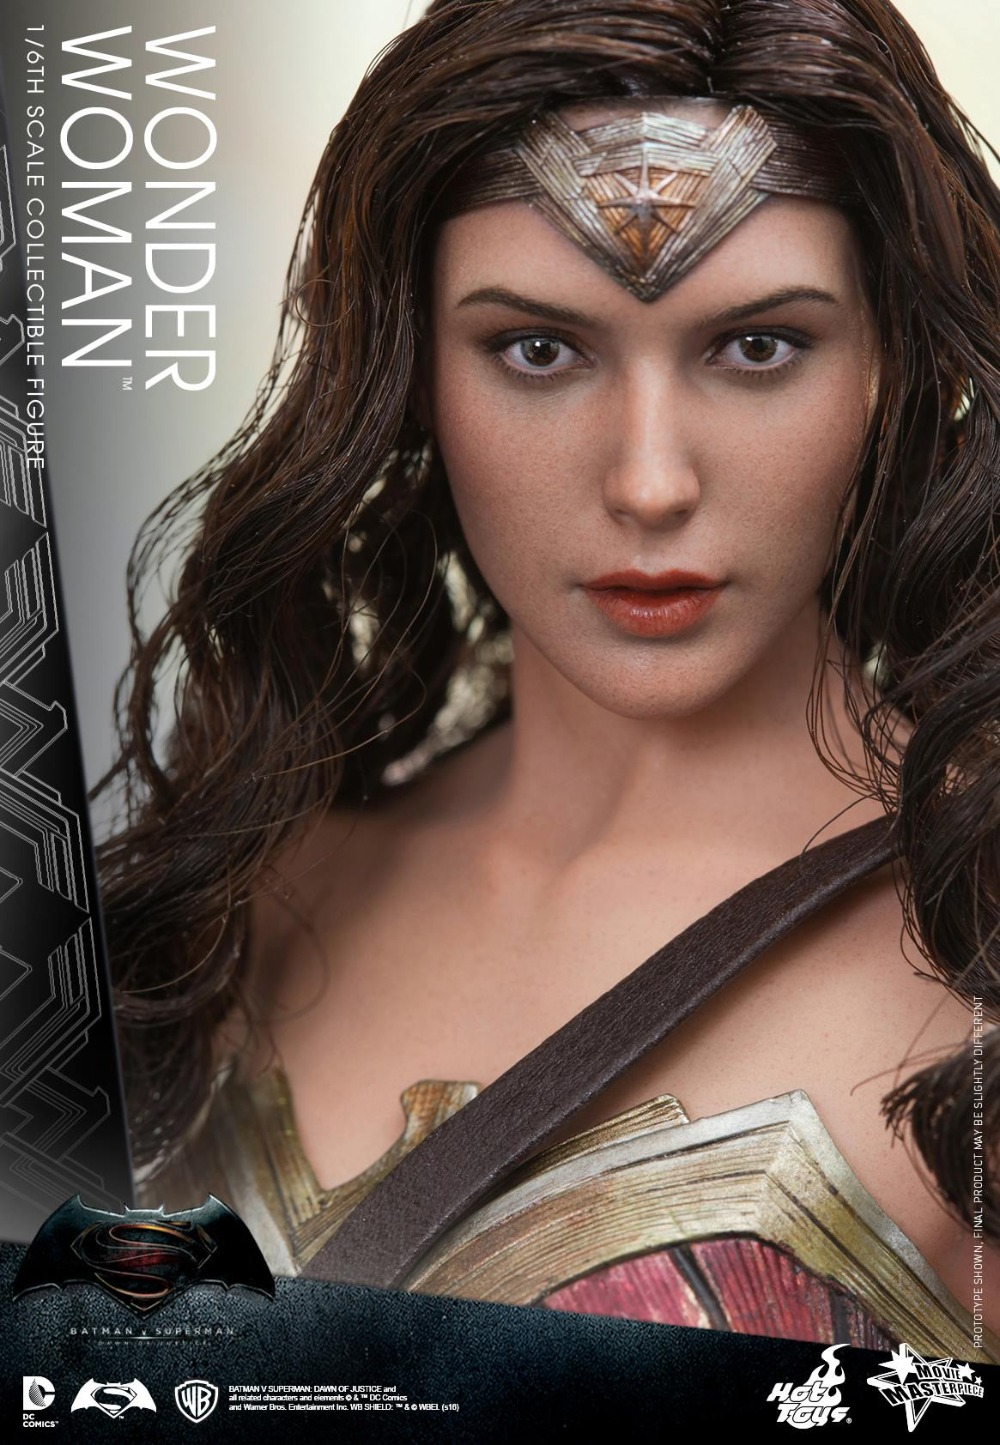 12 HOT TOYS HOTTOYS HT 1/6 MMS359 Batman Vs Superman Dawn of Justice Wonder Woman Gal Gadot Collectible Action Figure Pre-order военные игрушки для детей hot toys wt hottoys ht 1 6